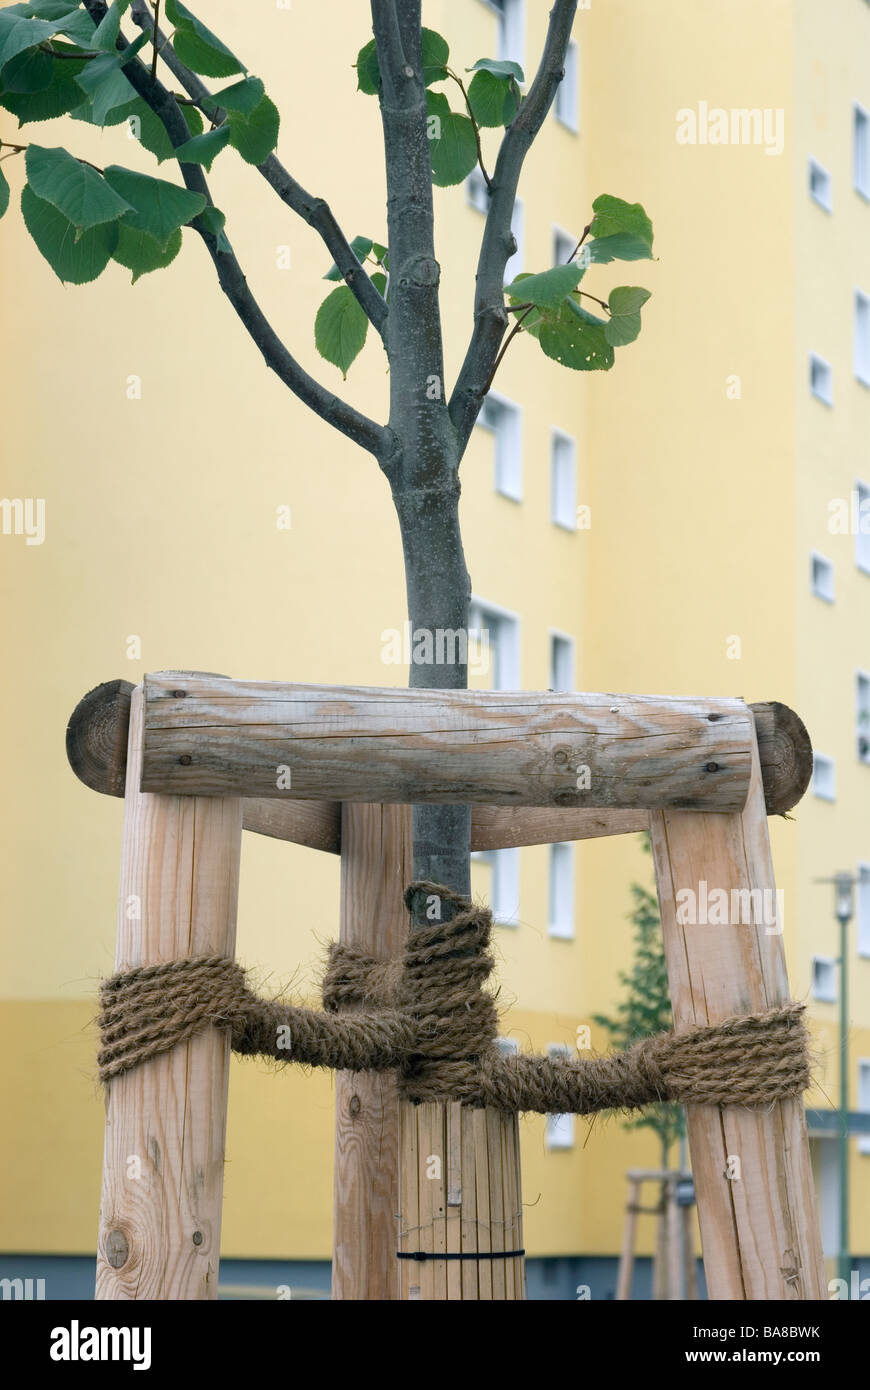 wooden support for young tree - Stock Image